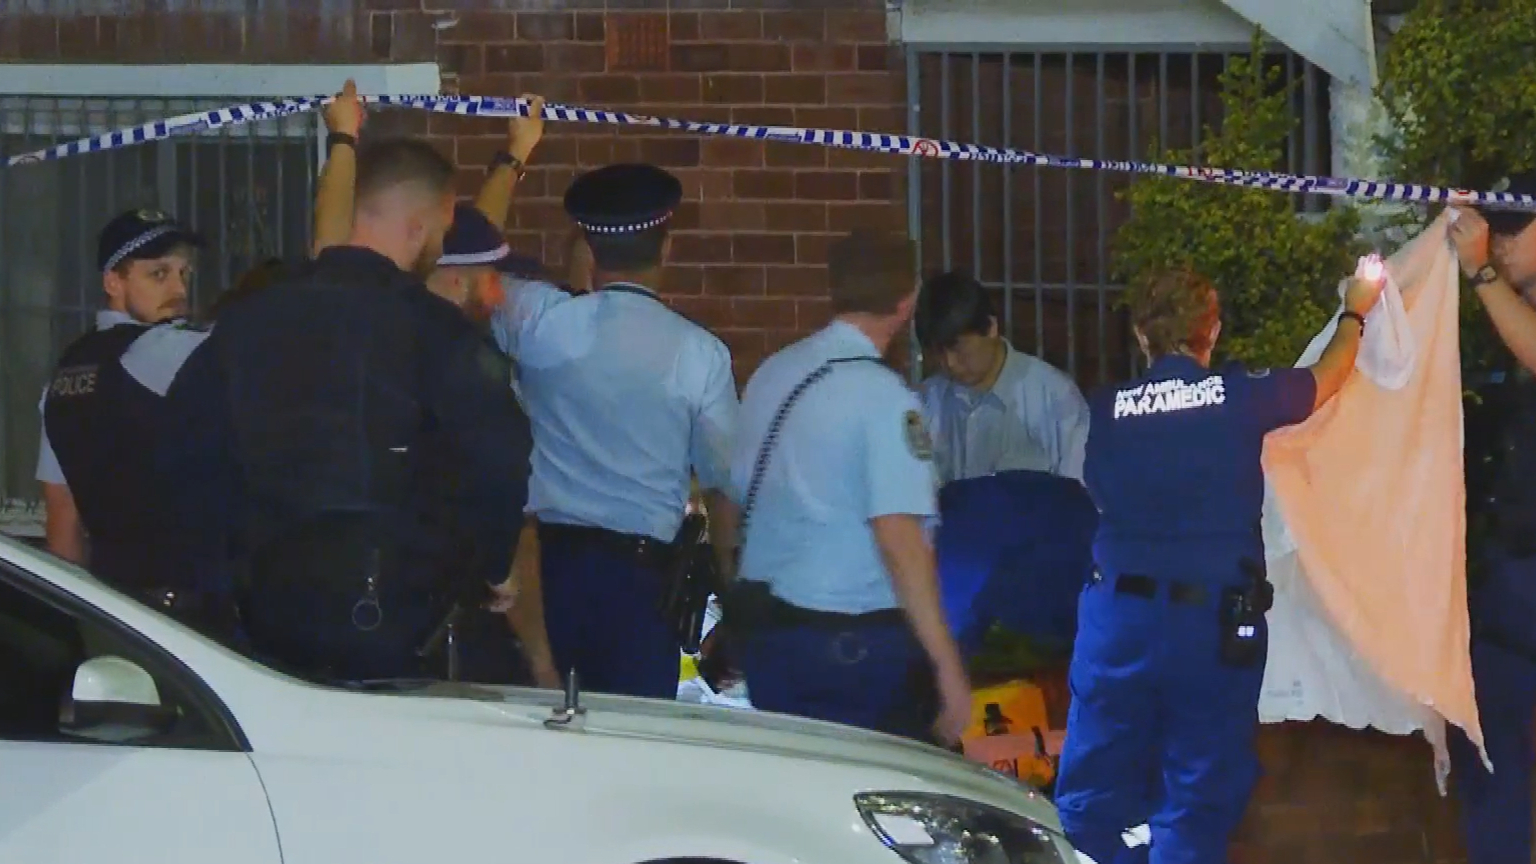 Grandmother assaulted in home invasion in Sydney's inner west